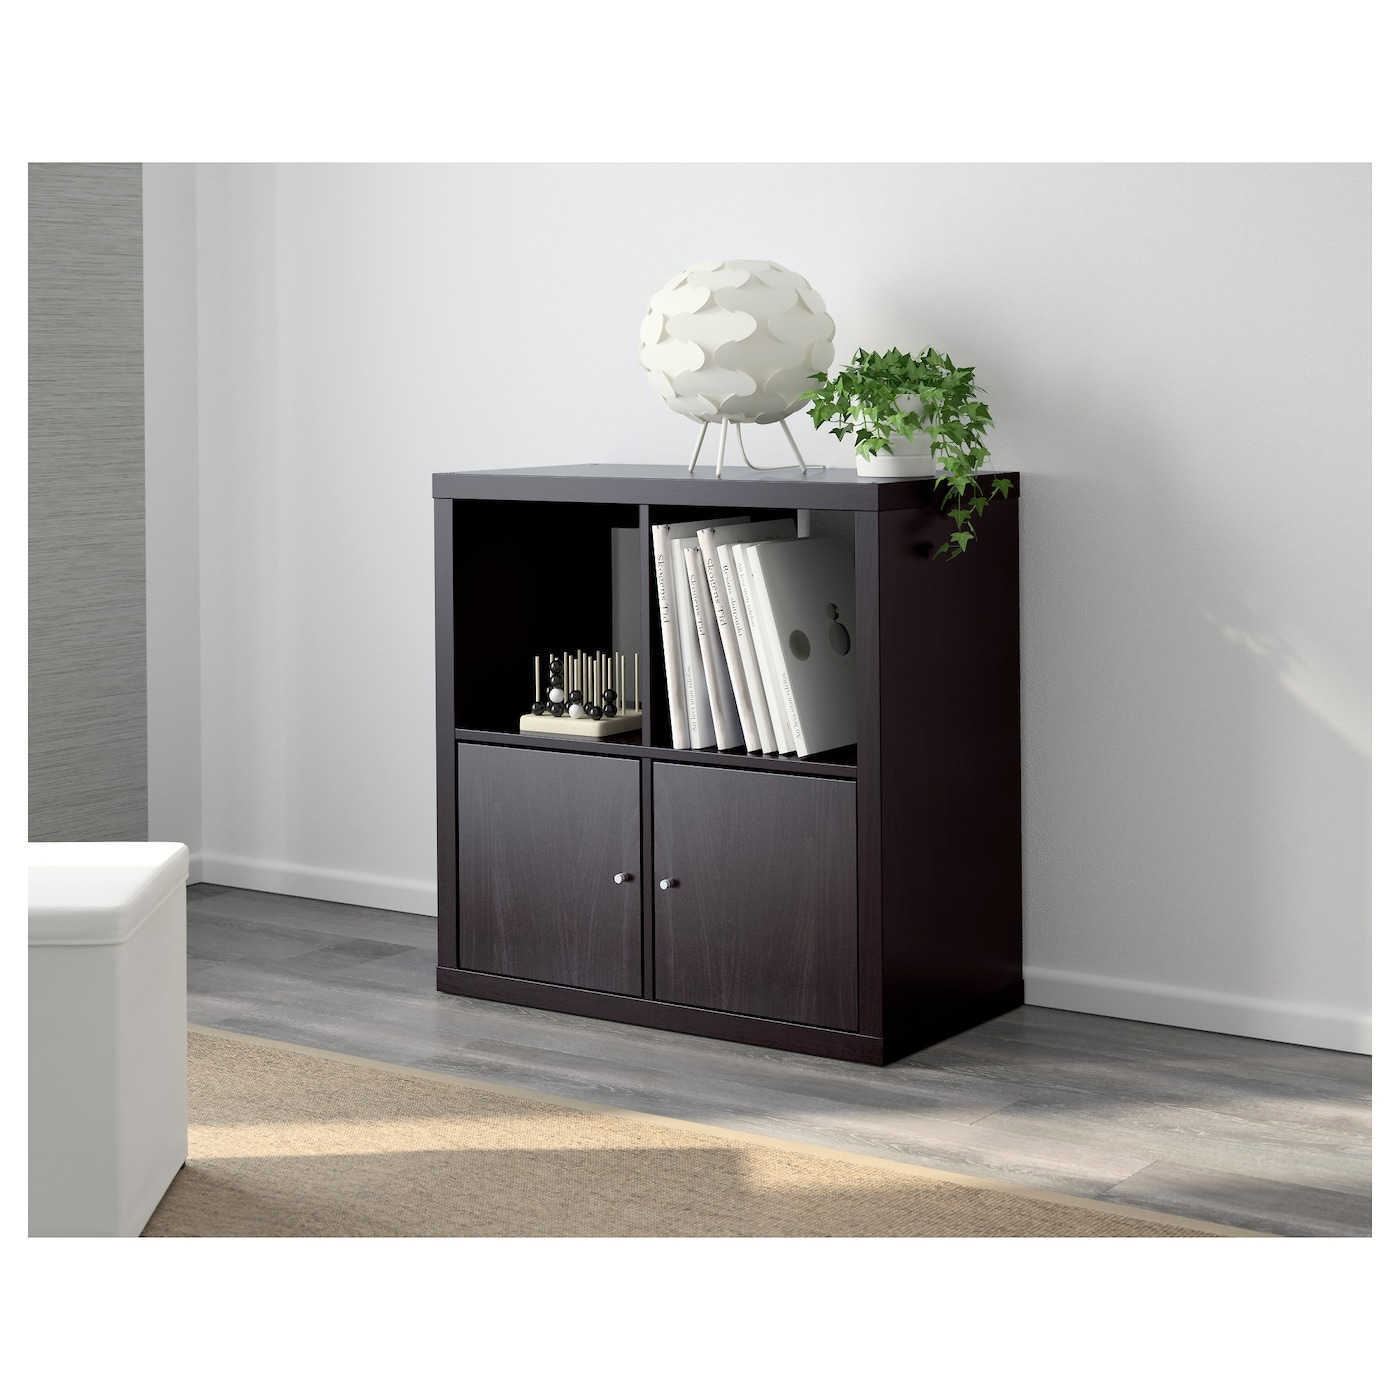 kallax shelving unit black brown 77x77 cm ikea. Black Bedroom Furniture Sets. Home Design Ideas